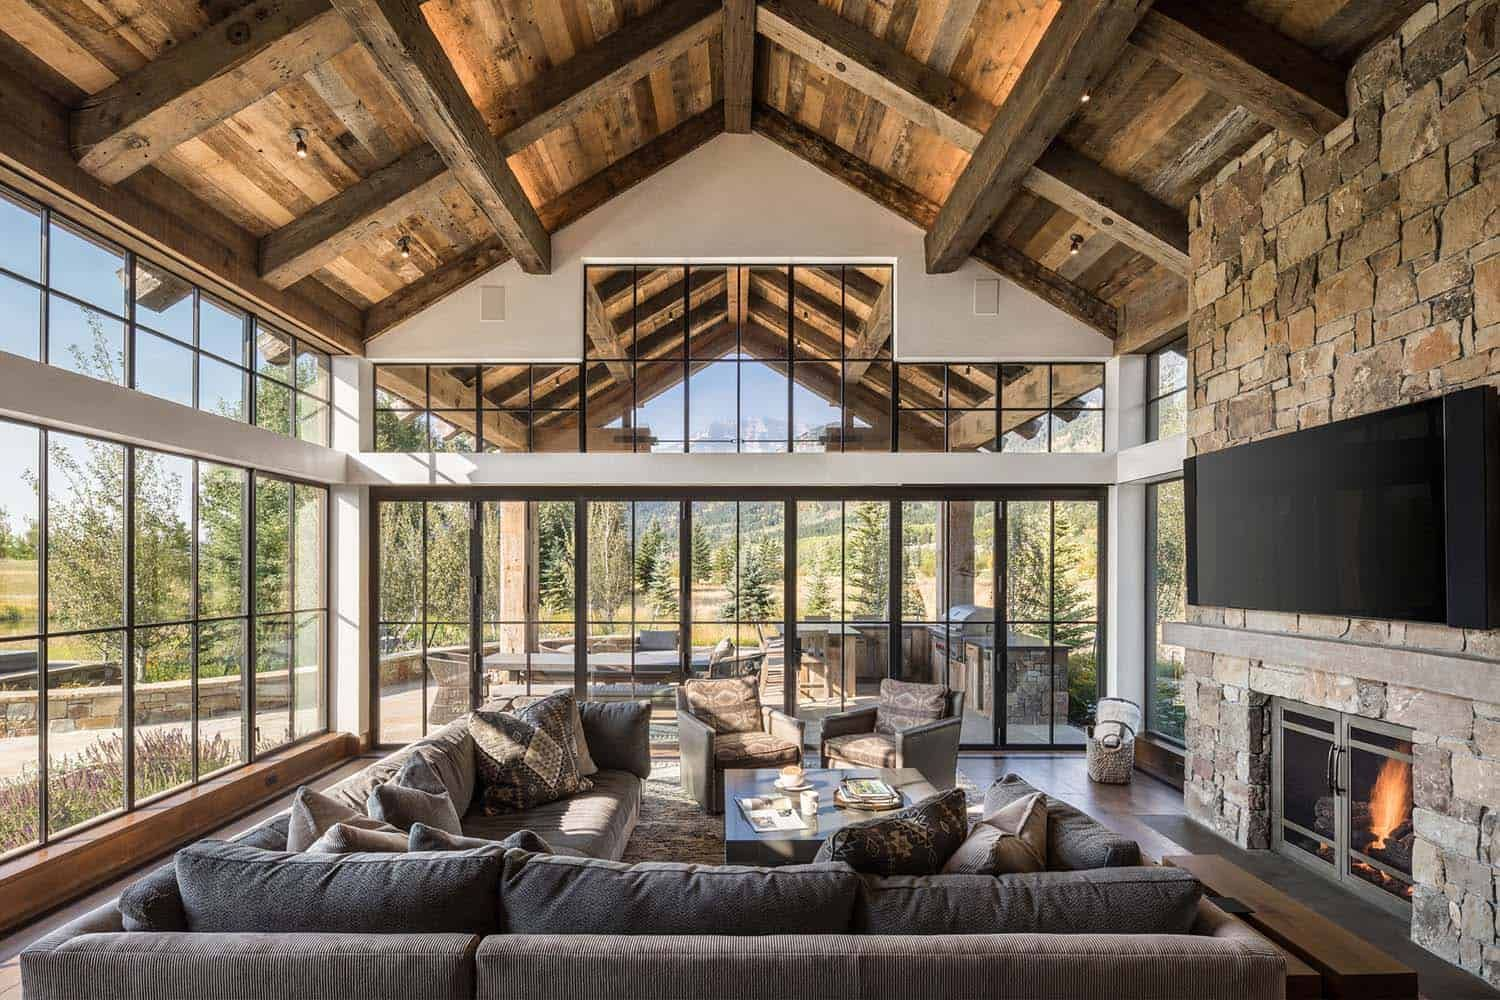 Delightful Rustic Home In Wyoming With A Dramatic Mountain Backdrop Rustic House Rustic Loft House Design